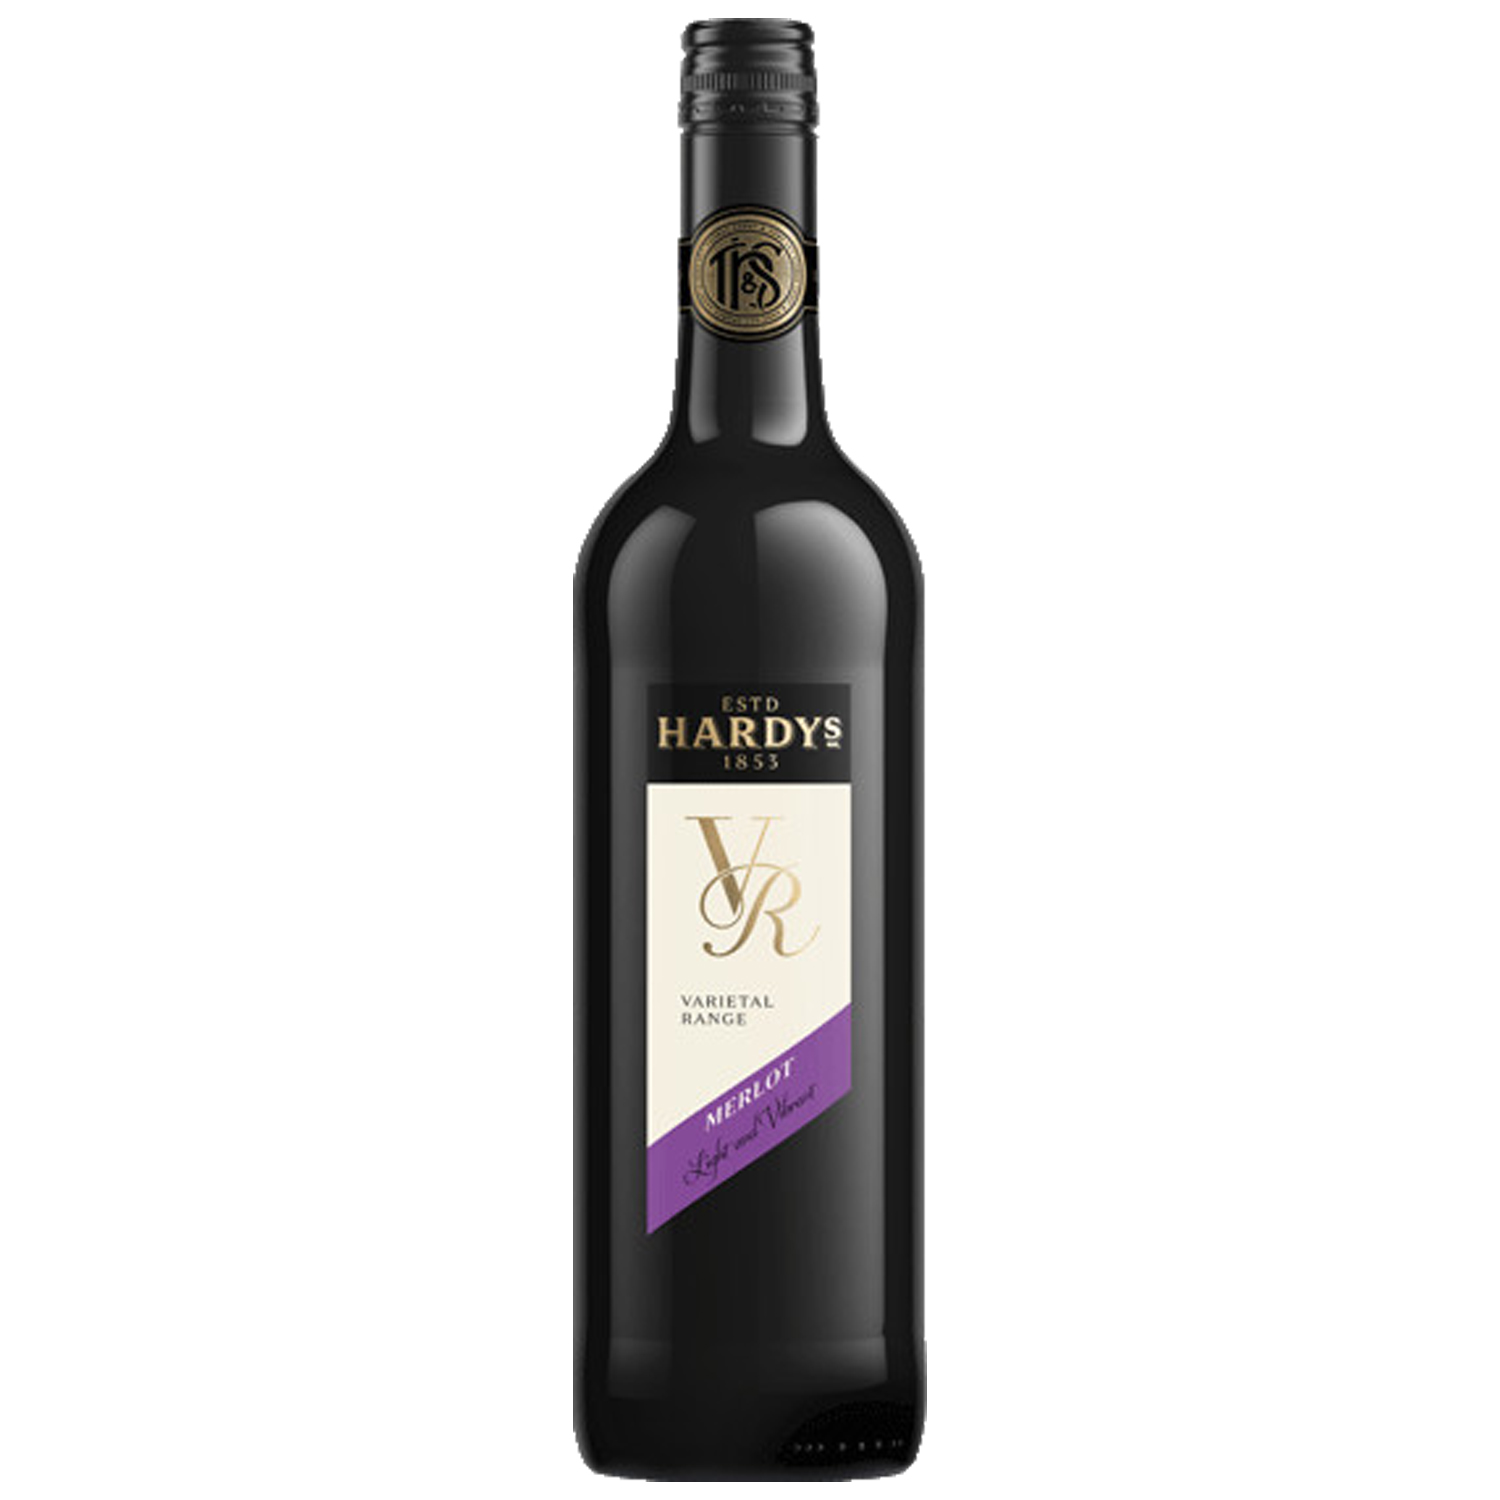 Hardys VR Series Wine - Merlot 750ml